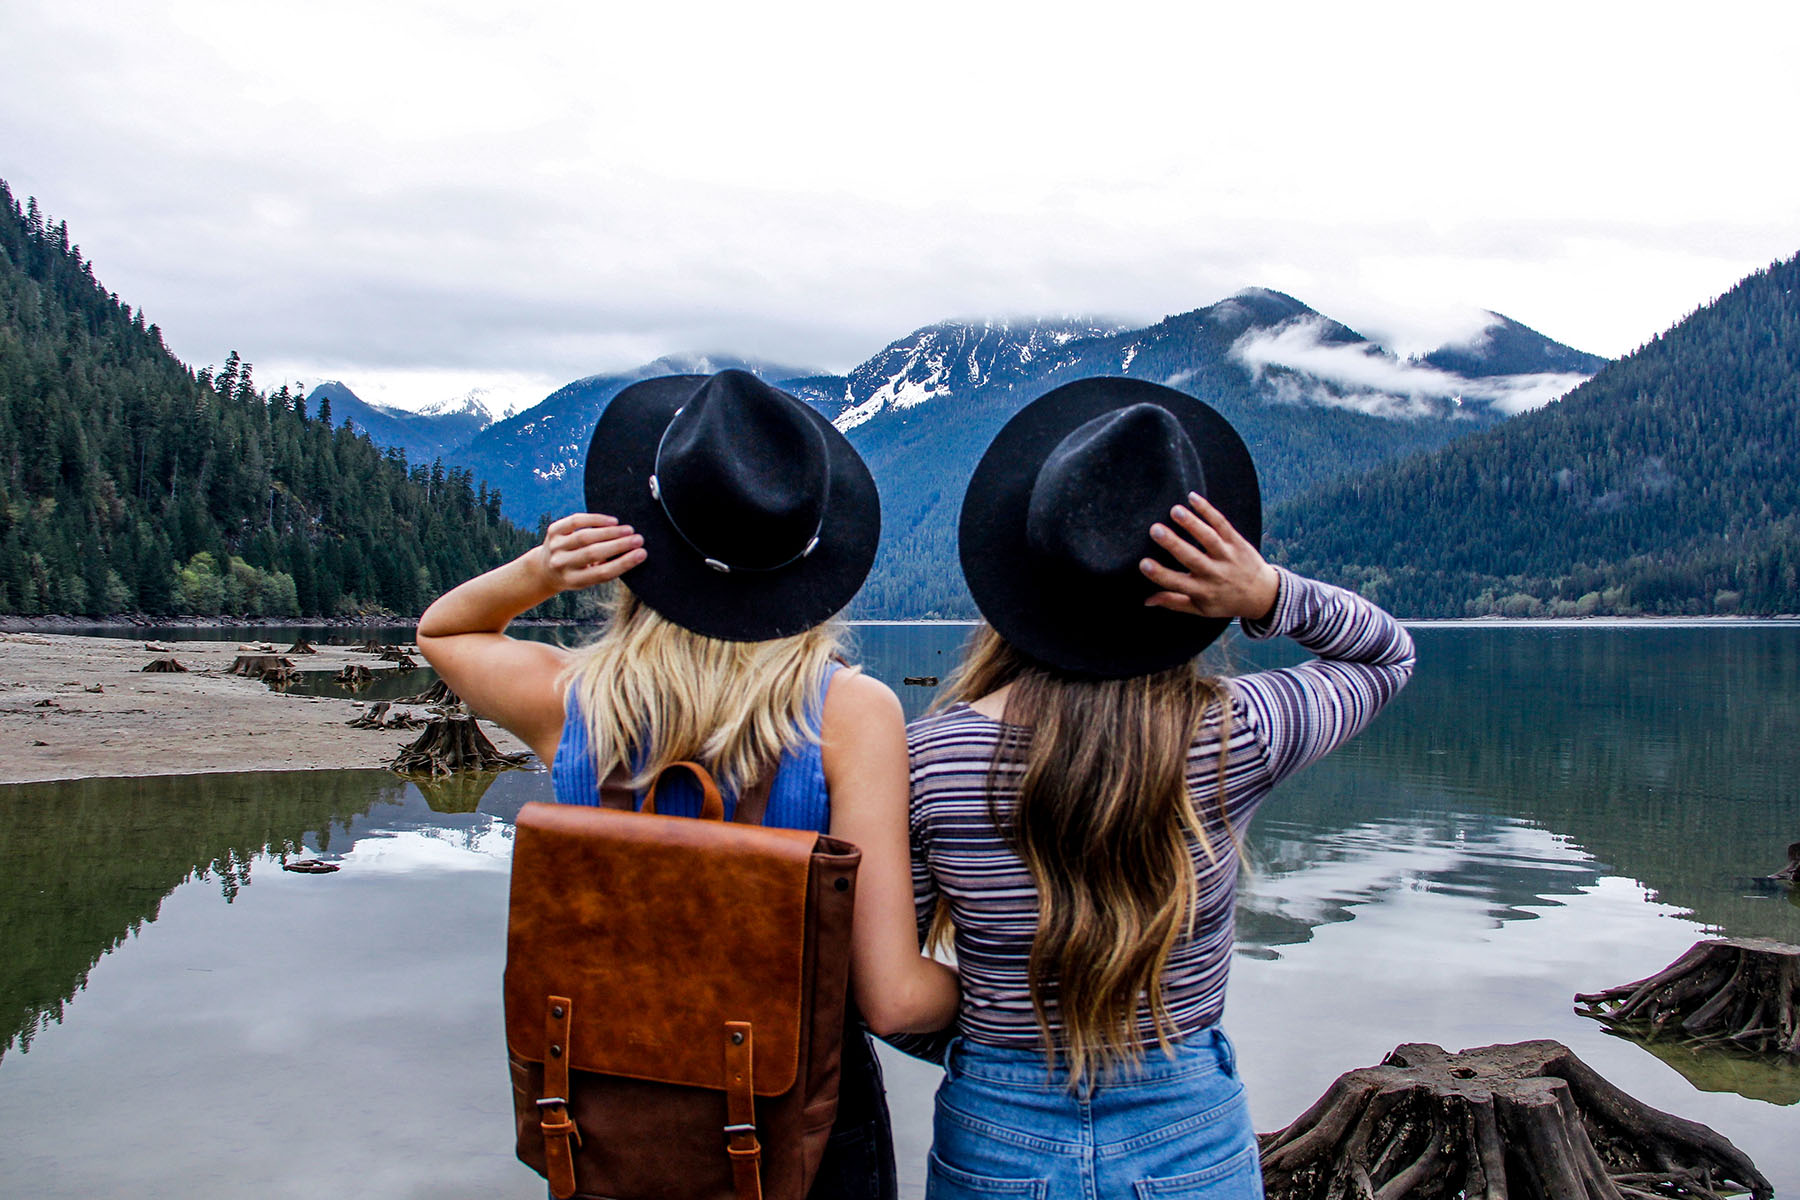 15 Gemini-Inspired Quotes About Life, Love, and Travel